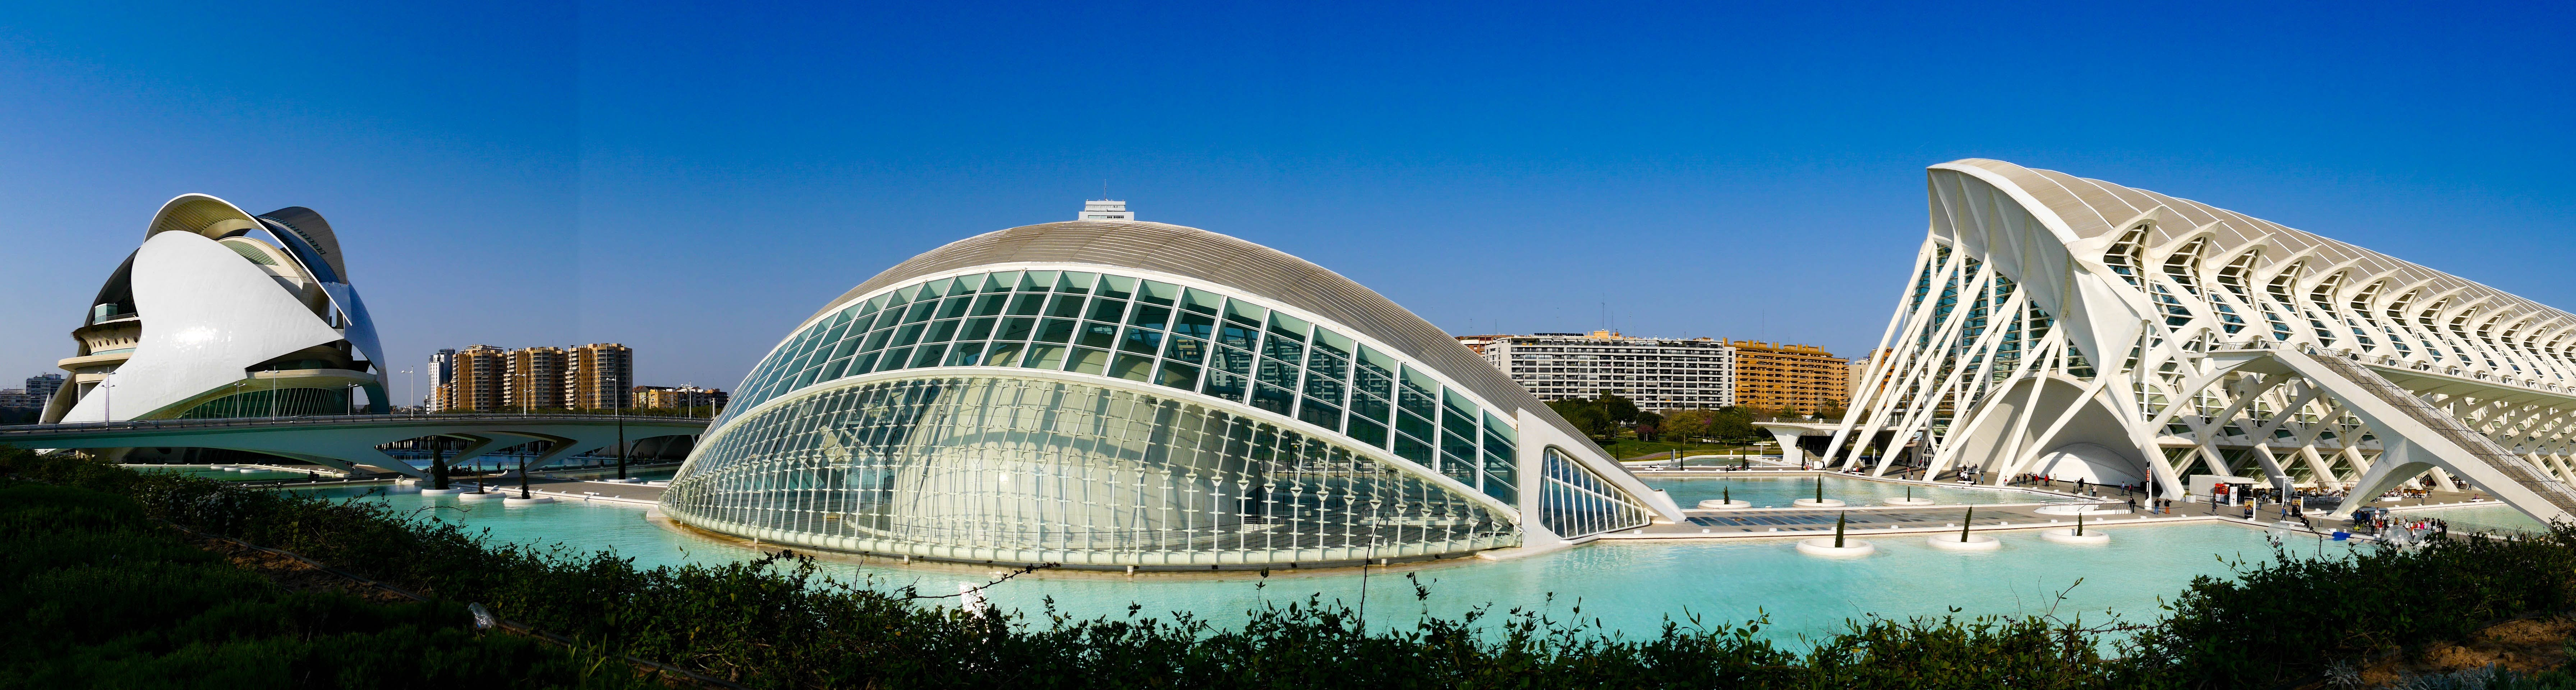 Panoramic View of Architectural Building With Man-made Pool